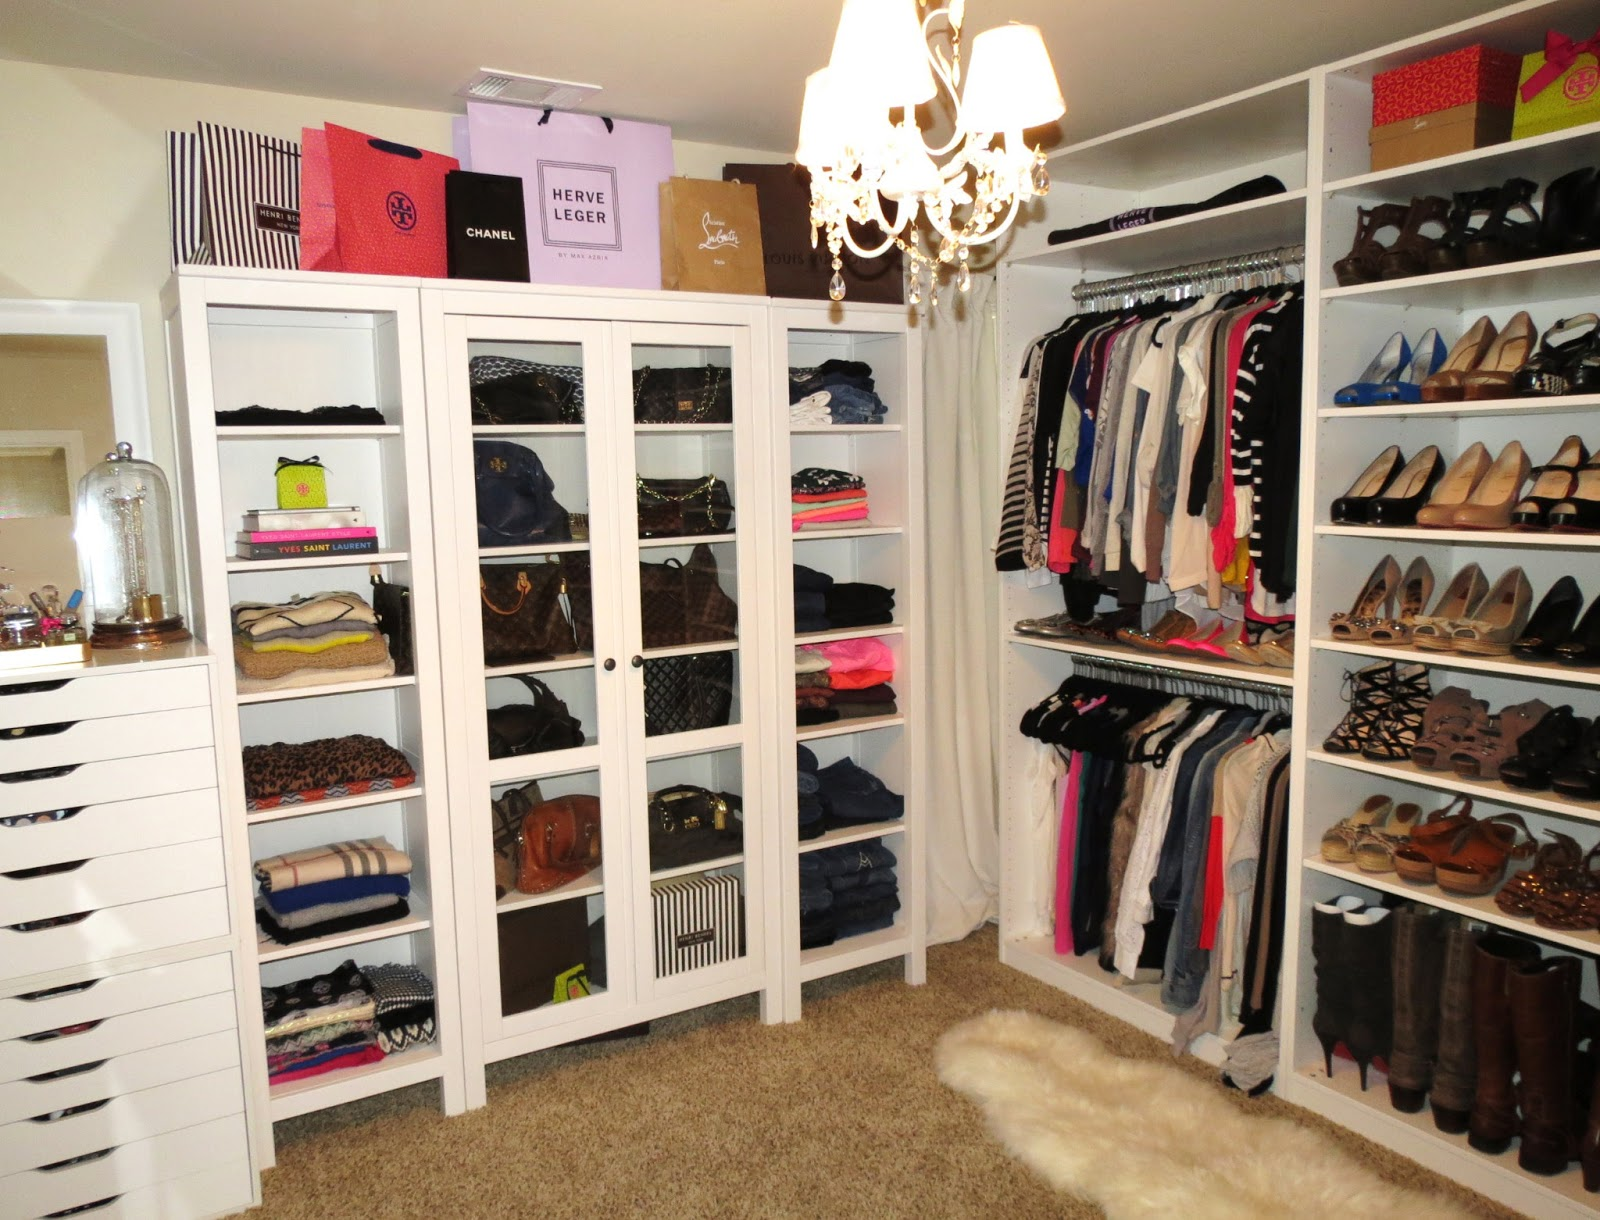 tiffanyd new closet reveal and video tour. Black Bedroom Furniture Sets. Home Design Ideas